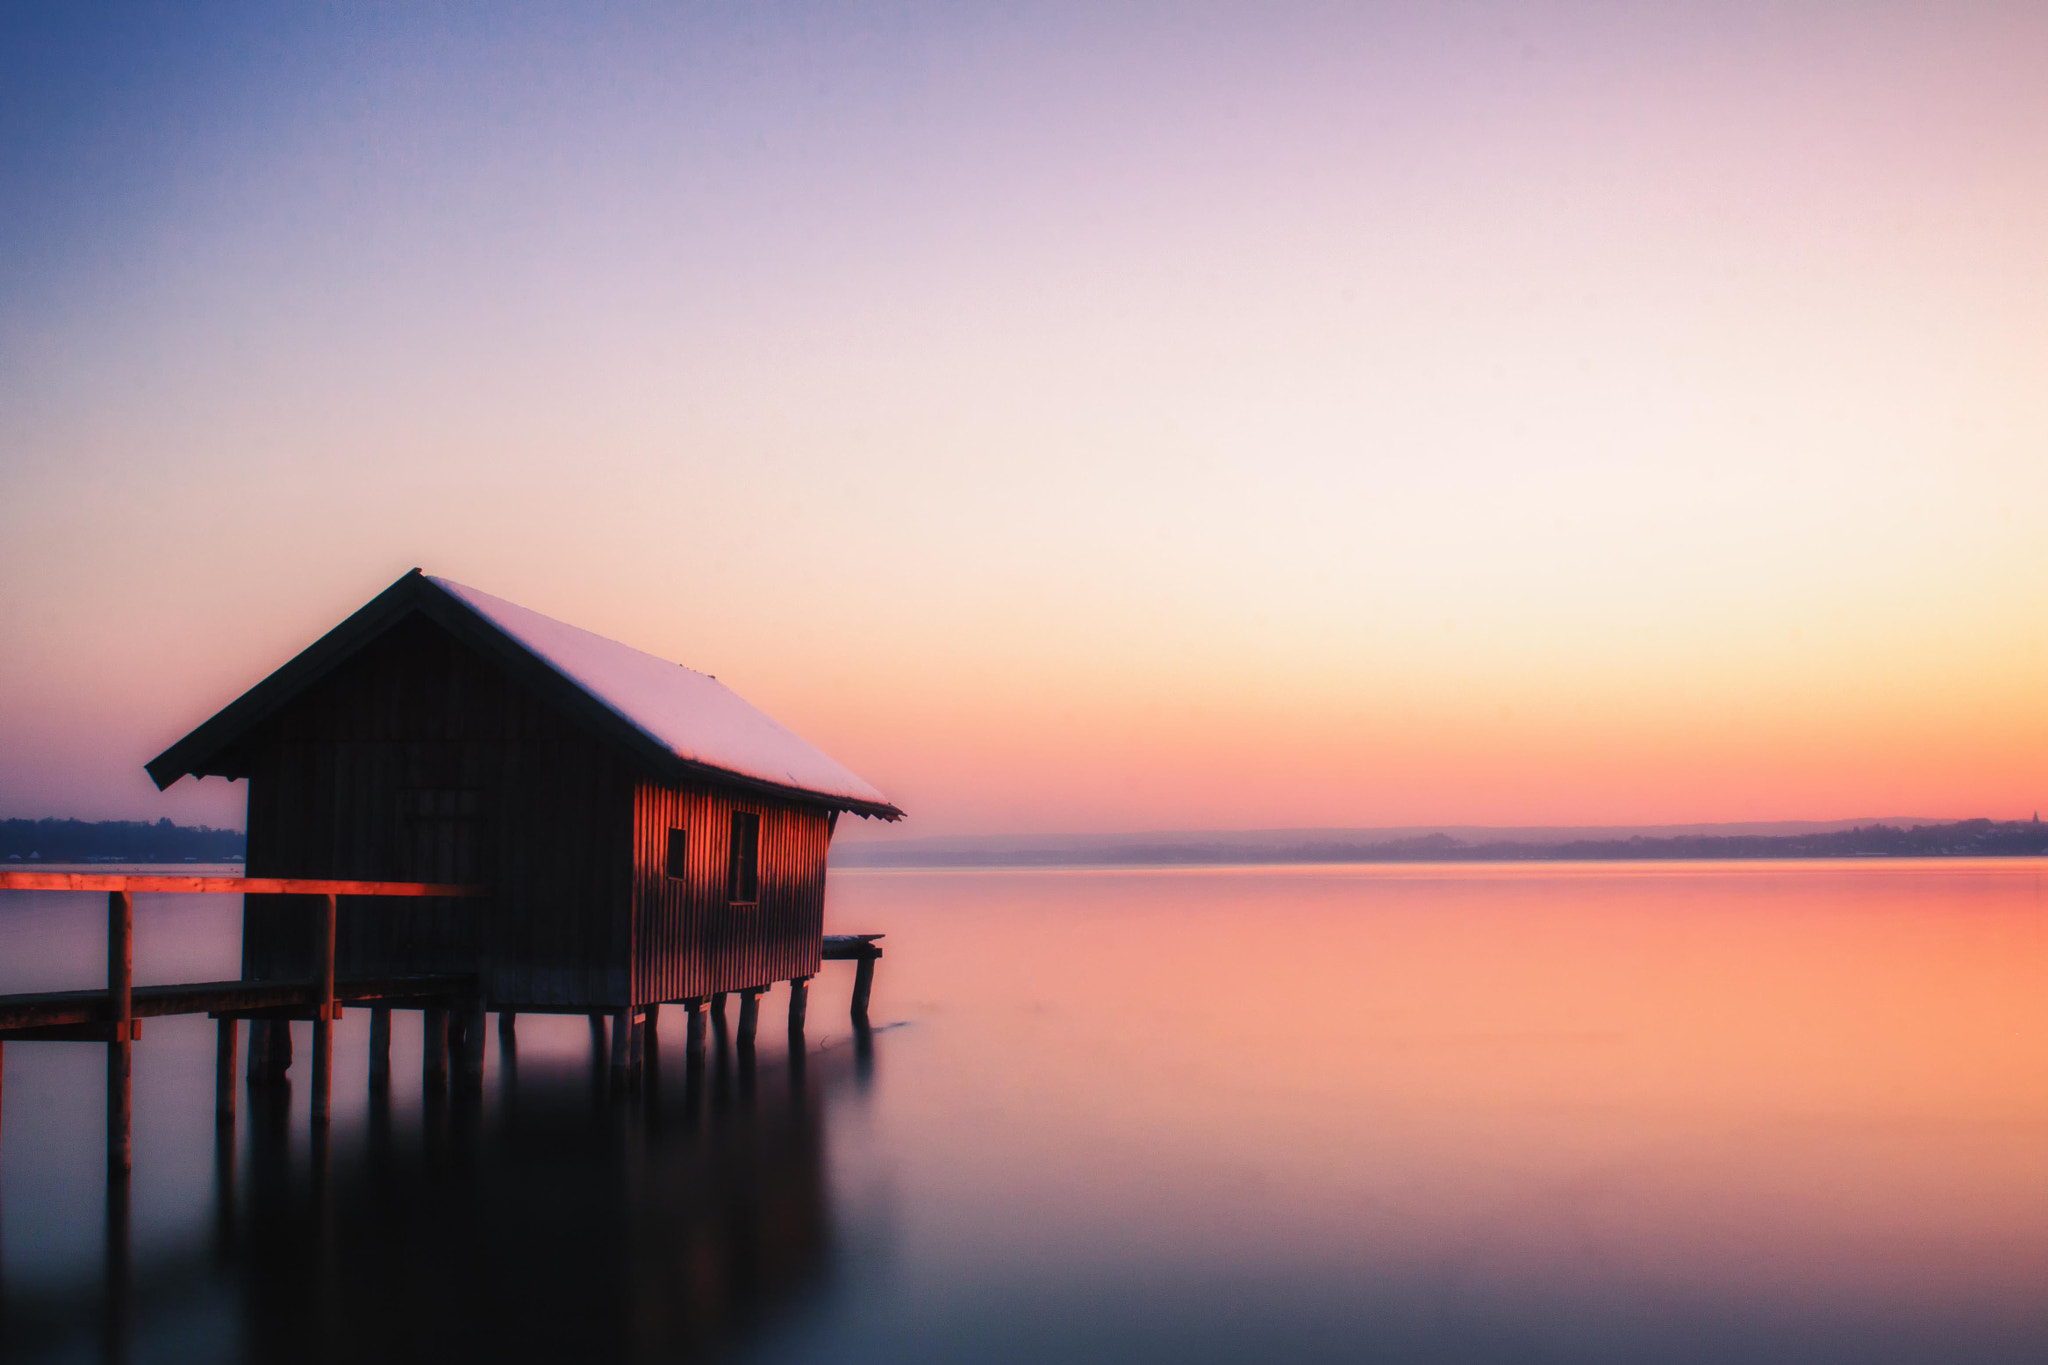 Photograph Sunset on Ammersee by Bettina  on 500px